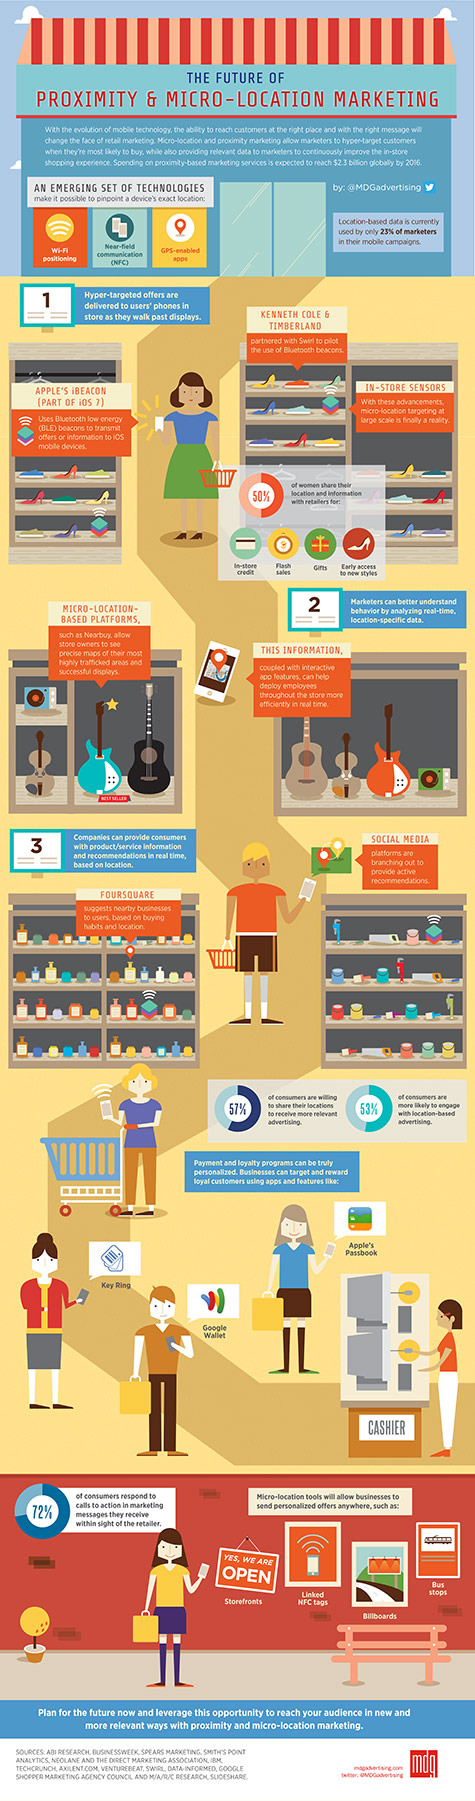 mdg infographic the future of proximity and micro location marketing 475